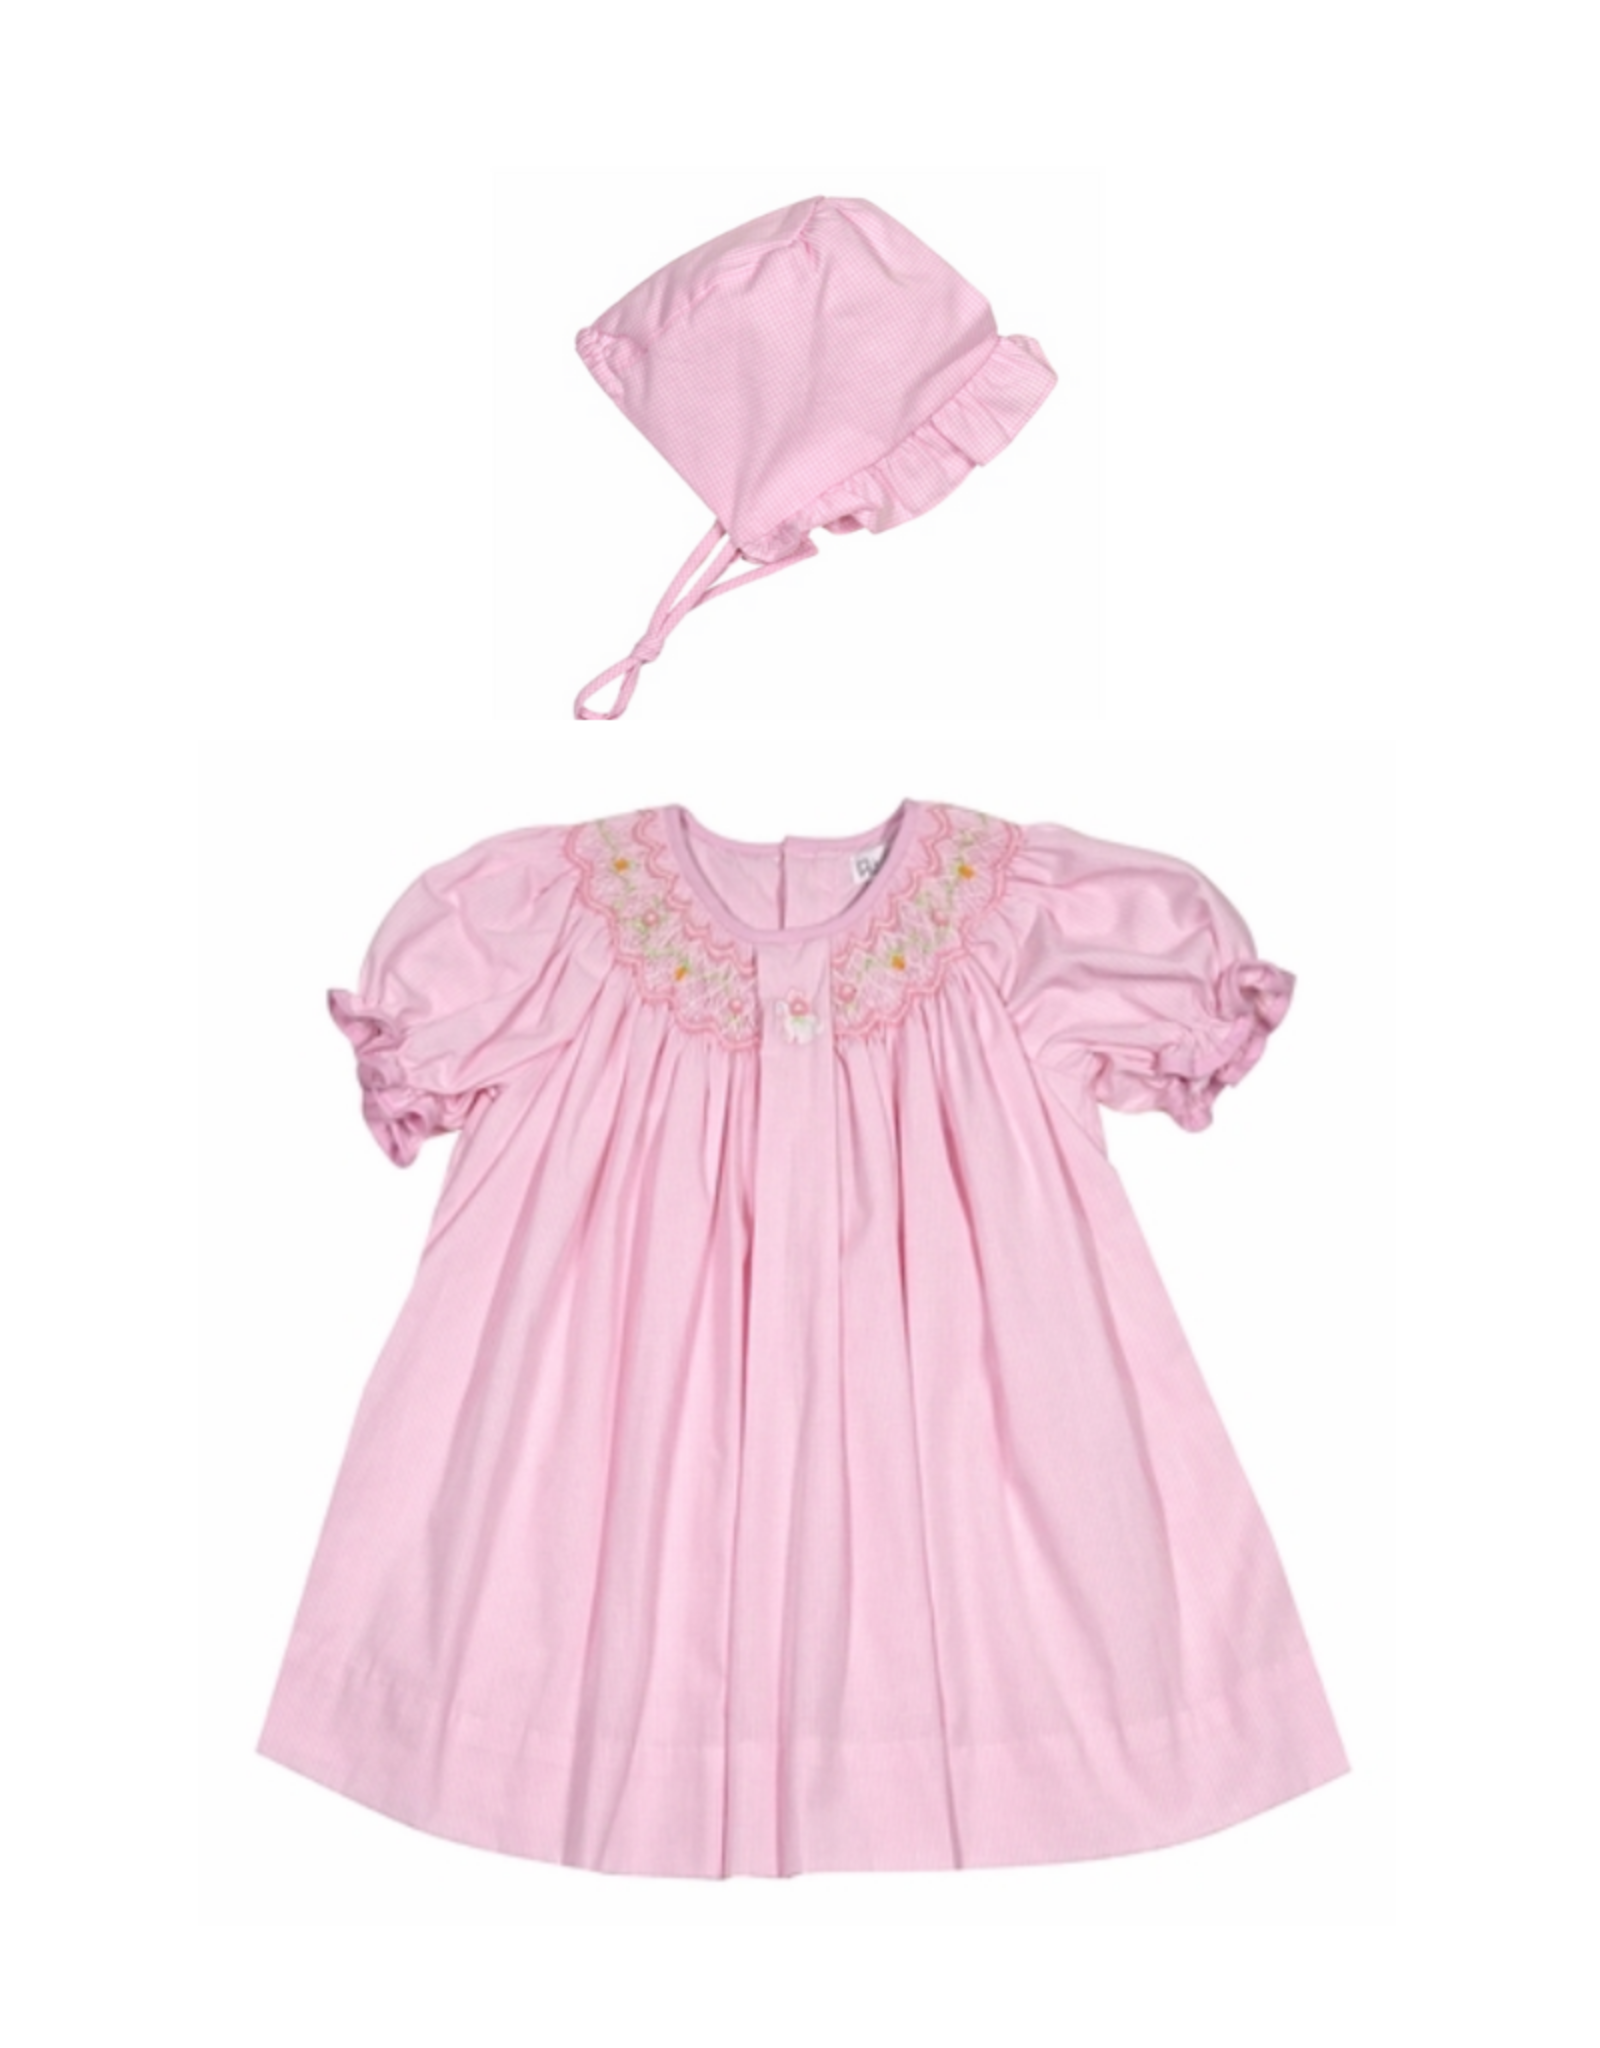 Petit Ami Pink Smocked Bunny Dress With Bonnet